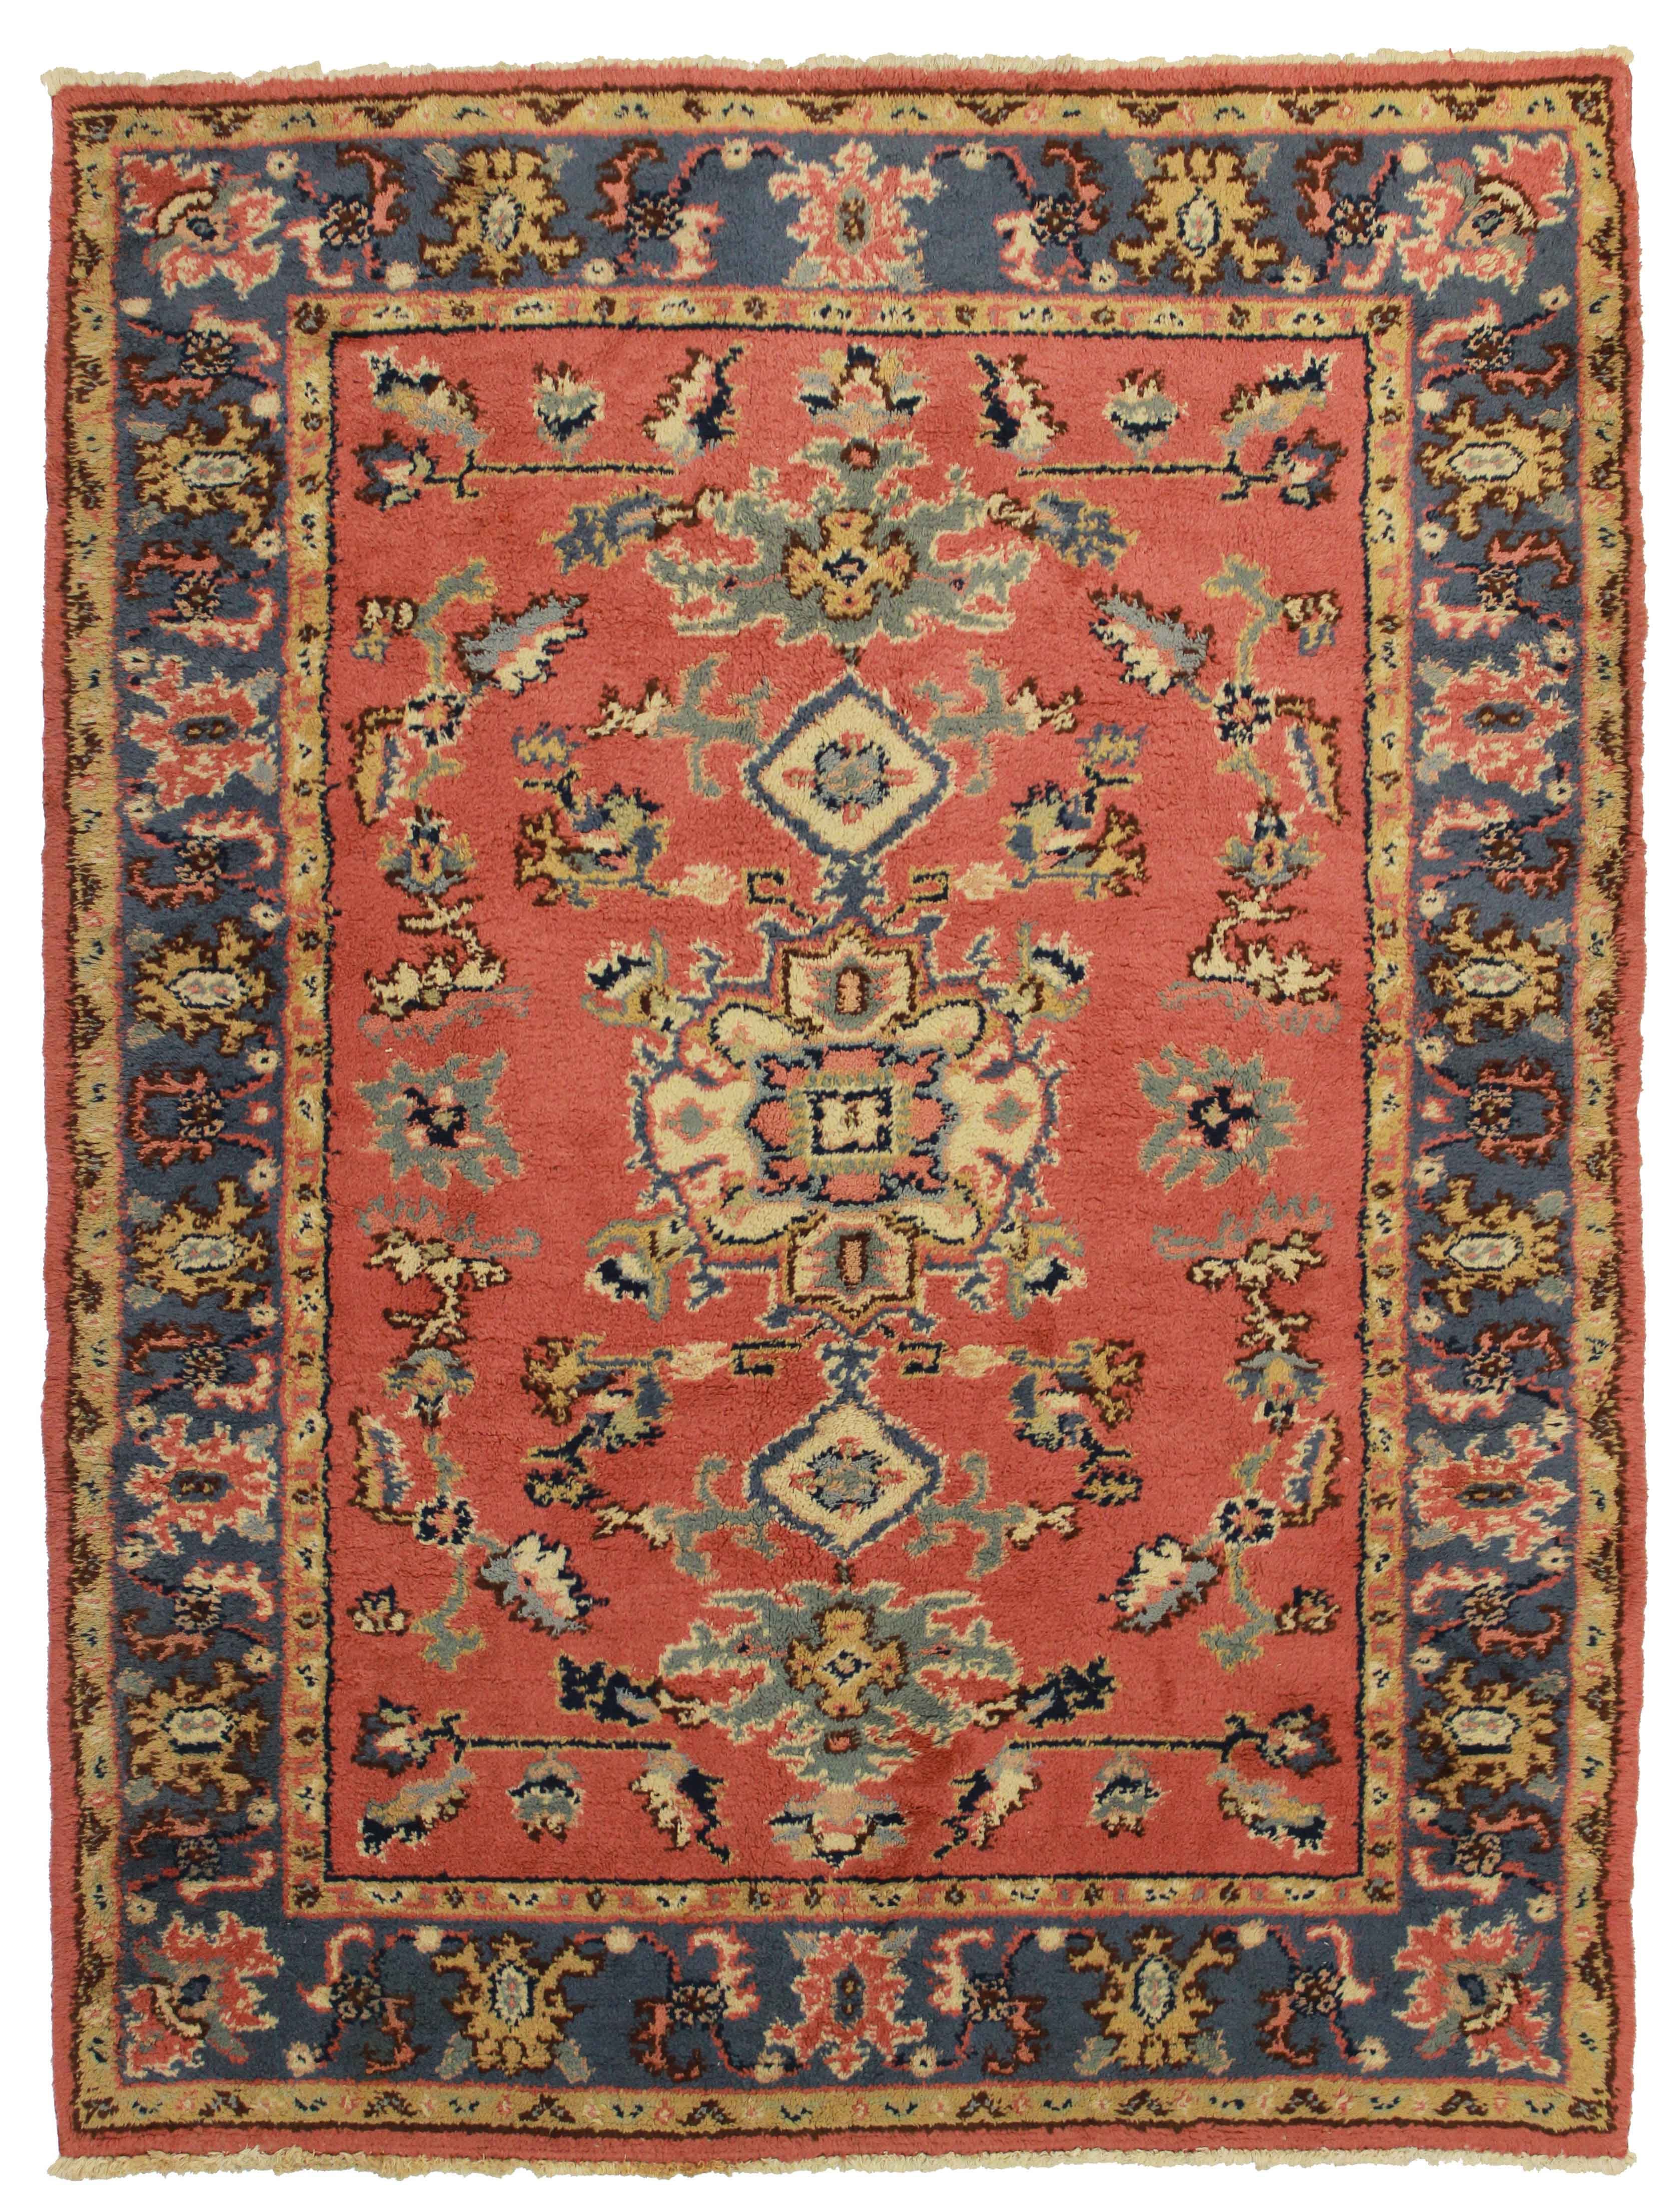 6 x 7 Hand Knotted Wool Turkish Oushak